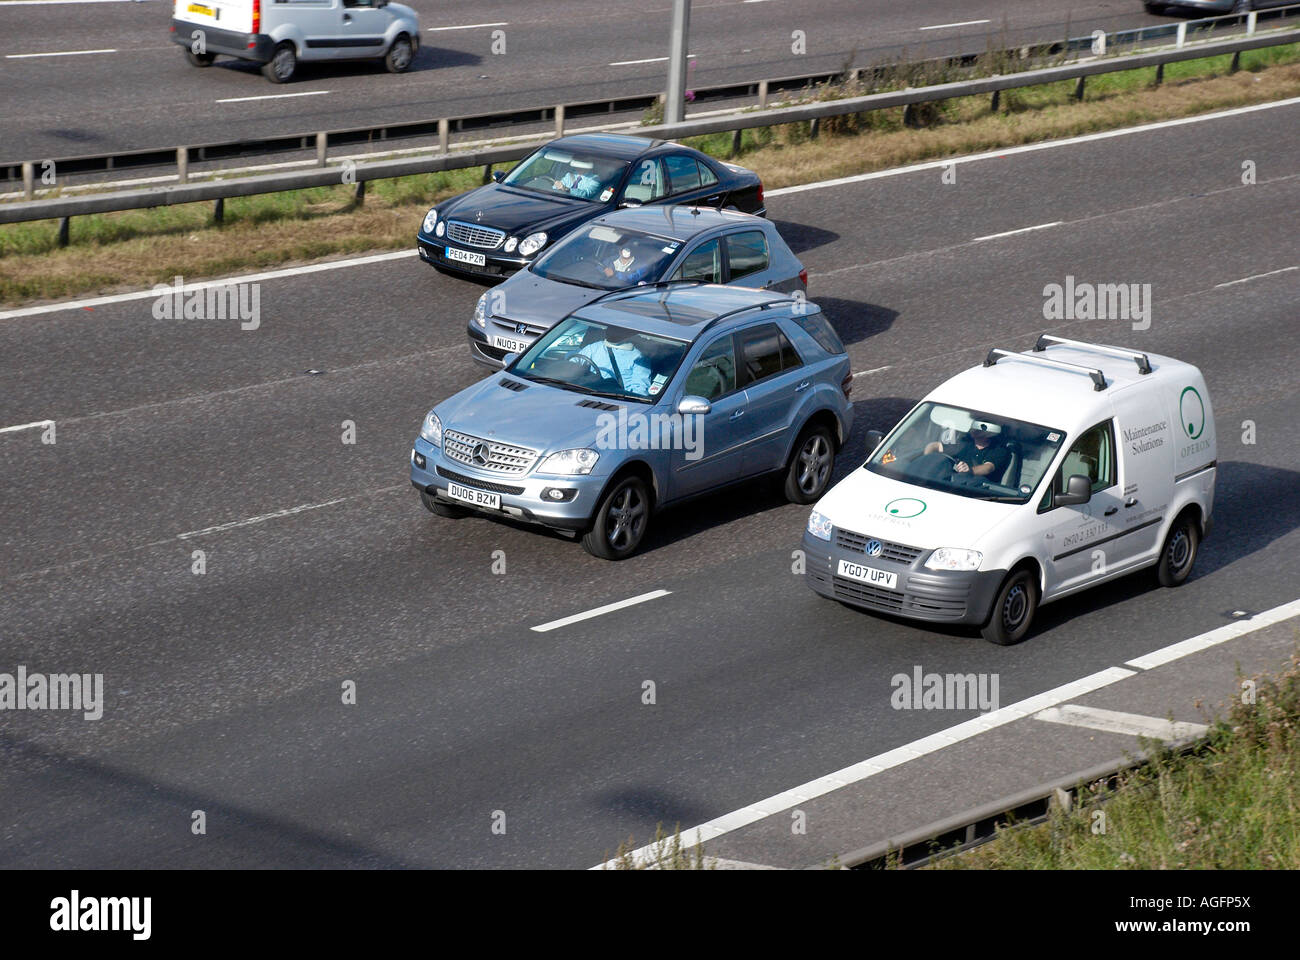 cars in a line on the motorway - Stock Image